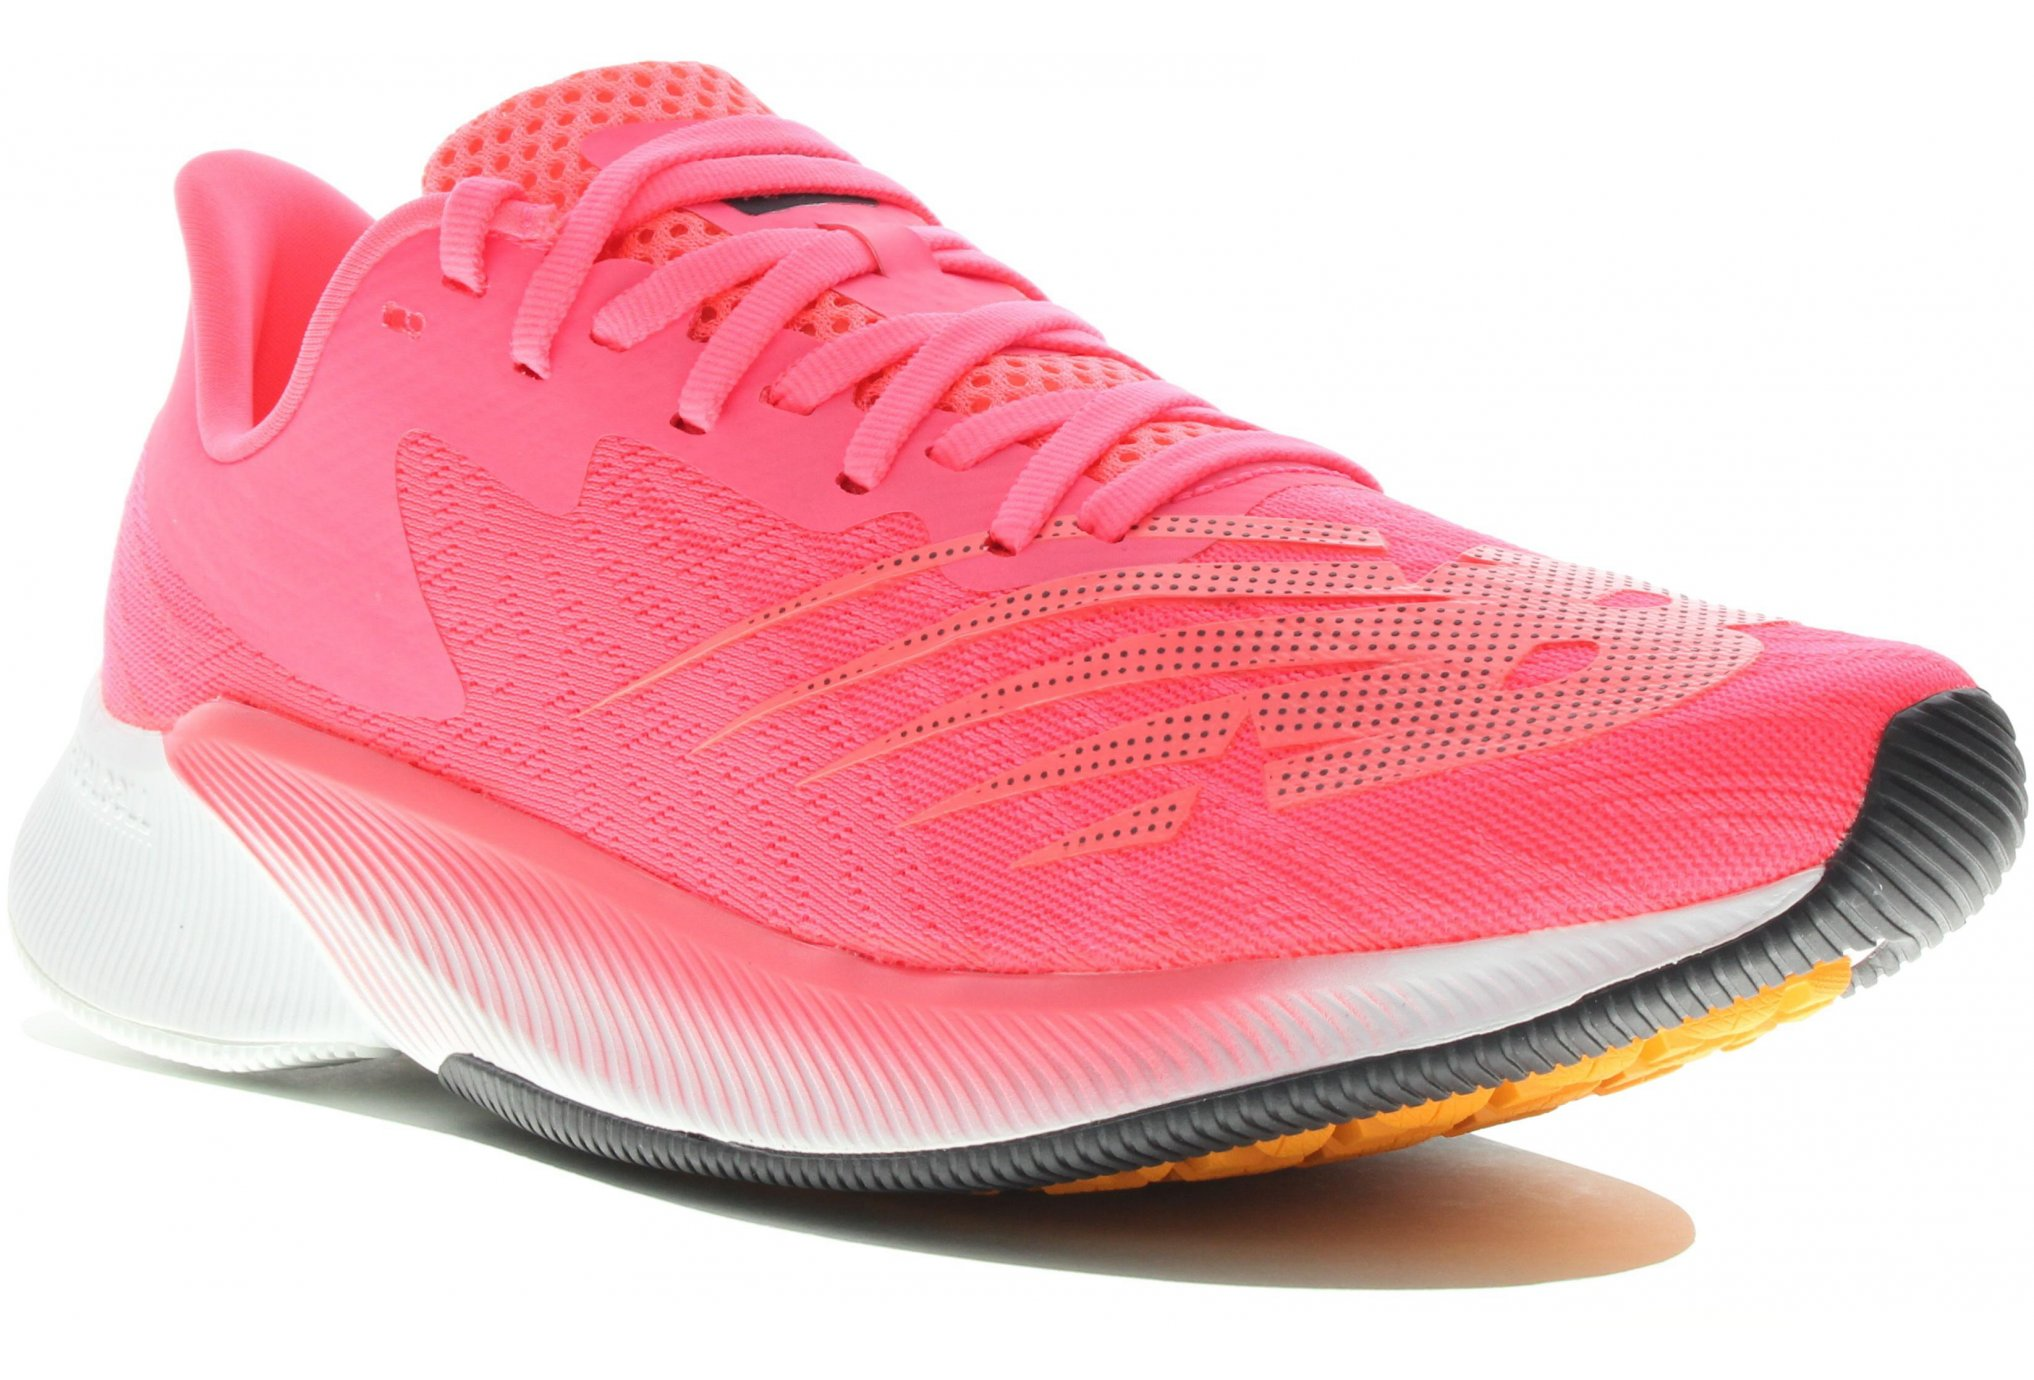 New Balance FuelCell Prism W Chaussures running femme